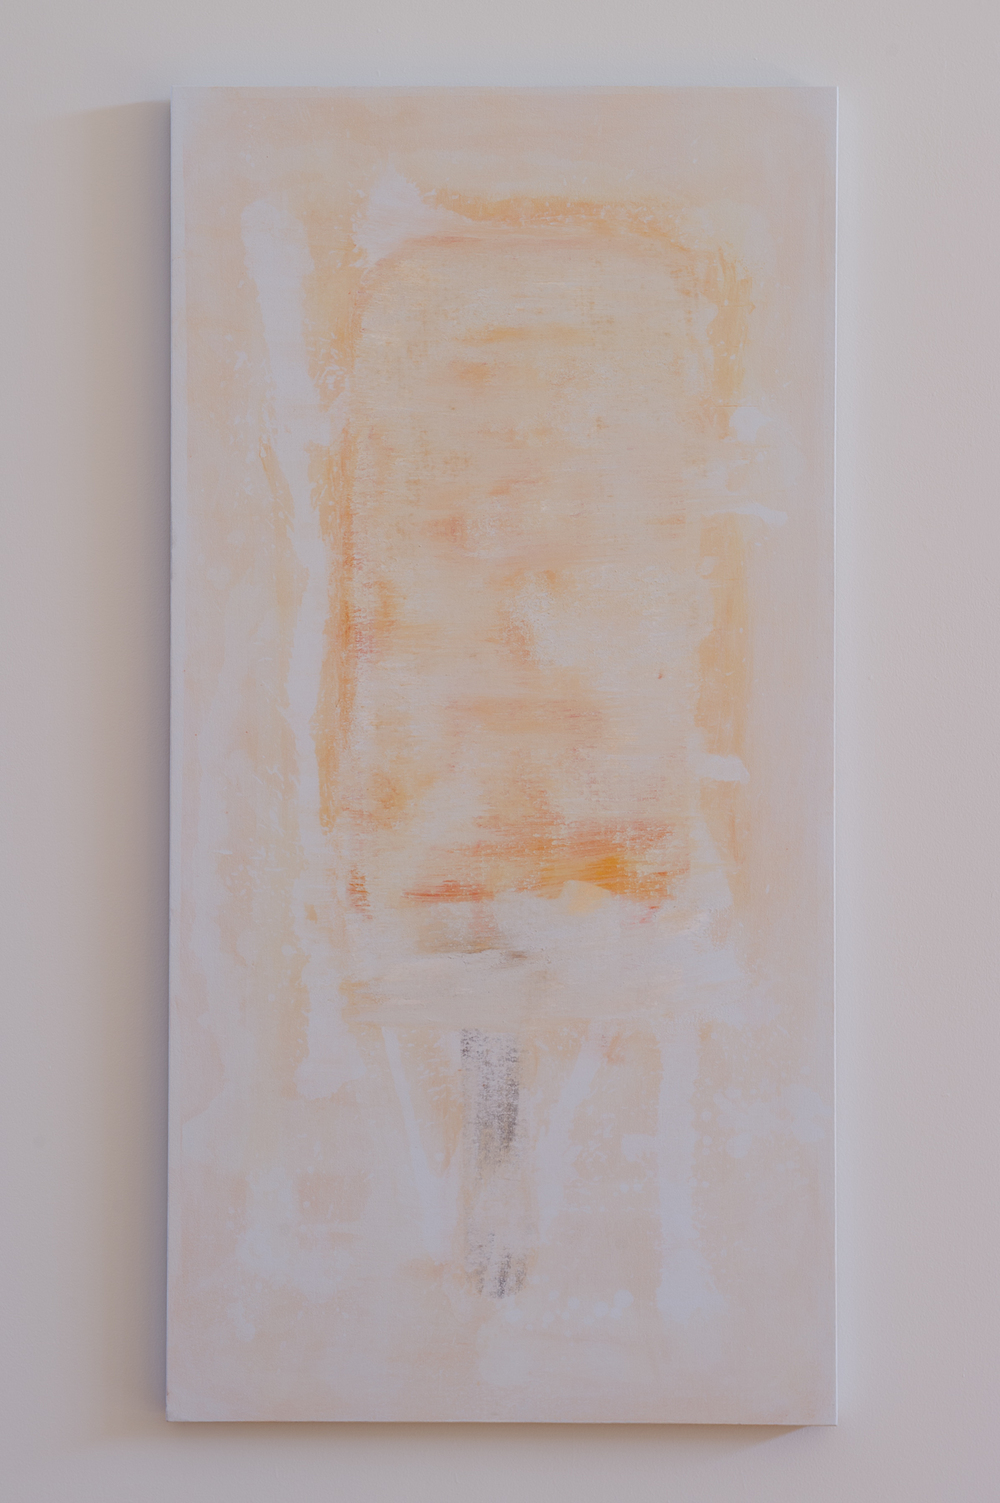 Erased Creamsicle (after Rauschenberg)